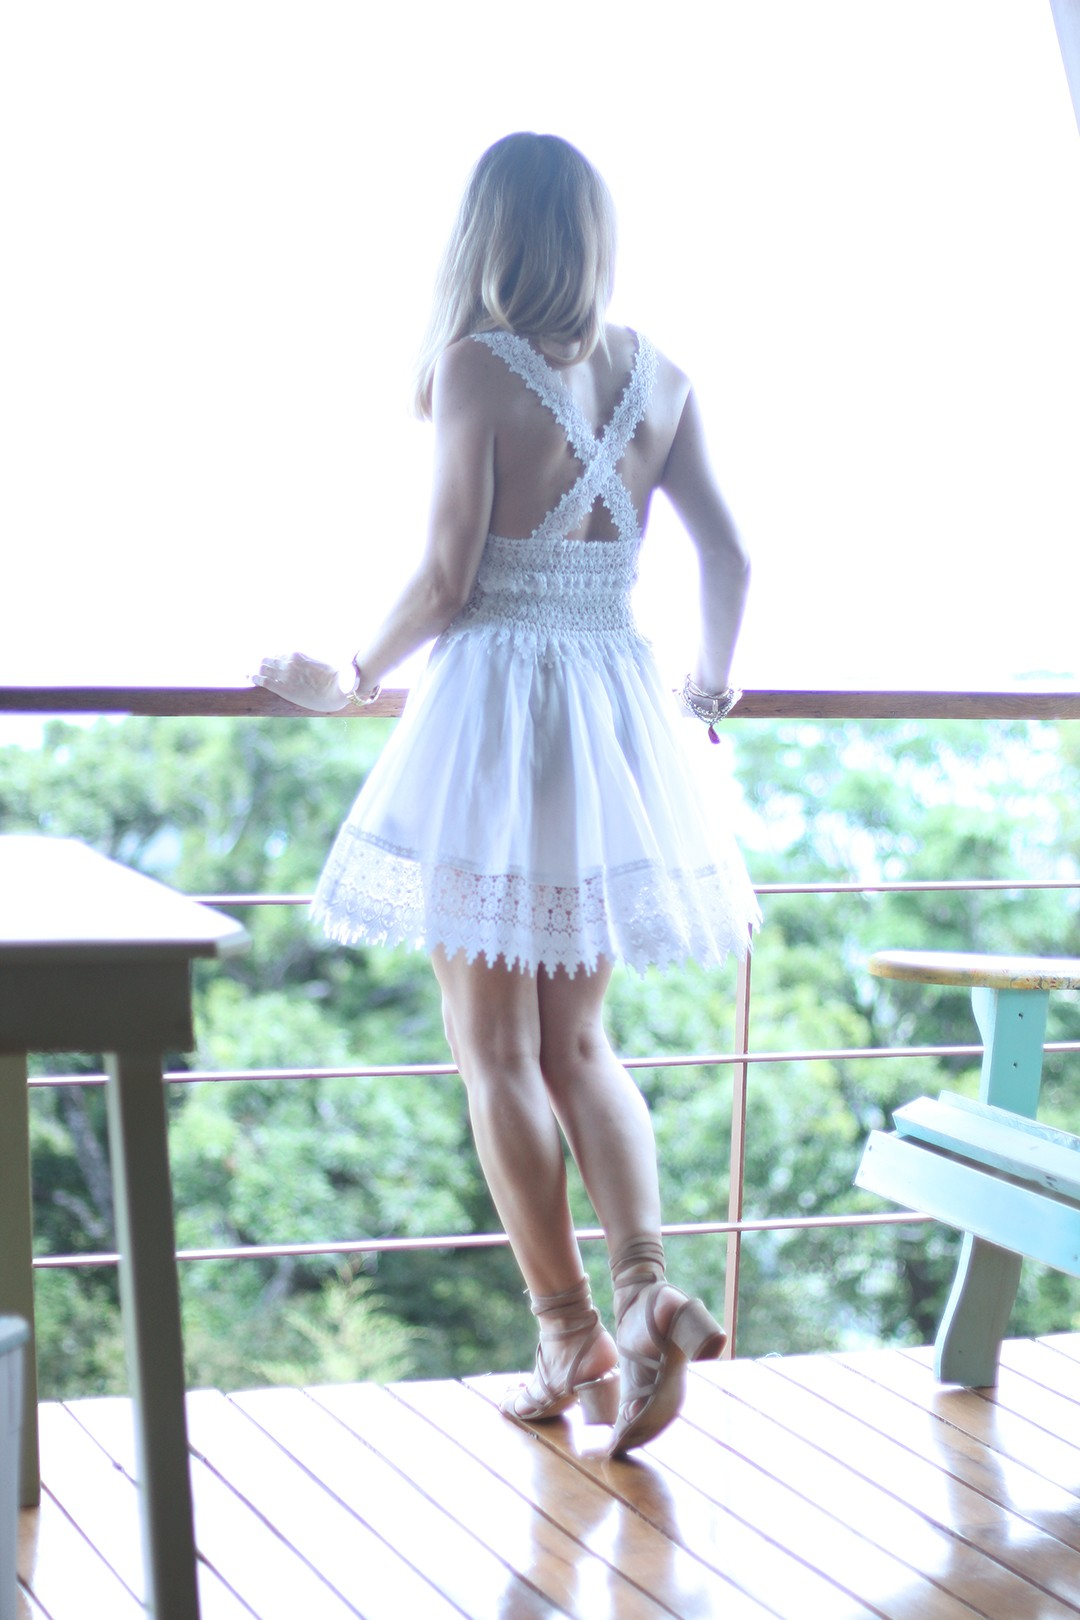 Spanish-blogger-Charo-Ruiz-dress-2016